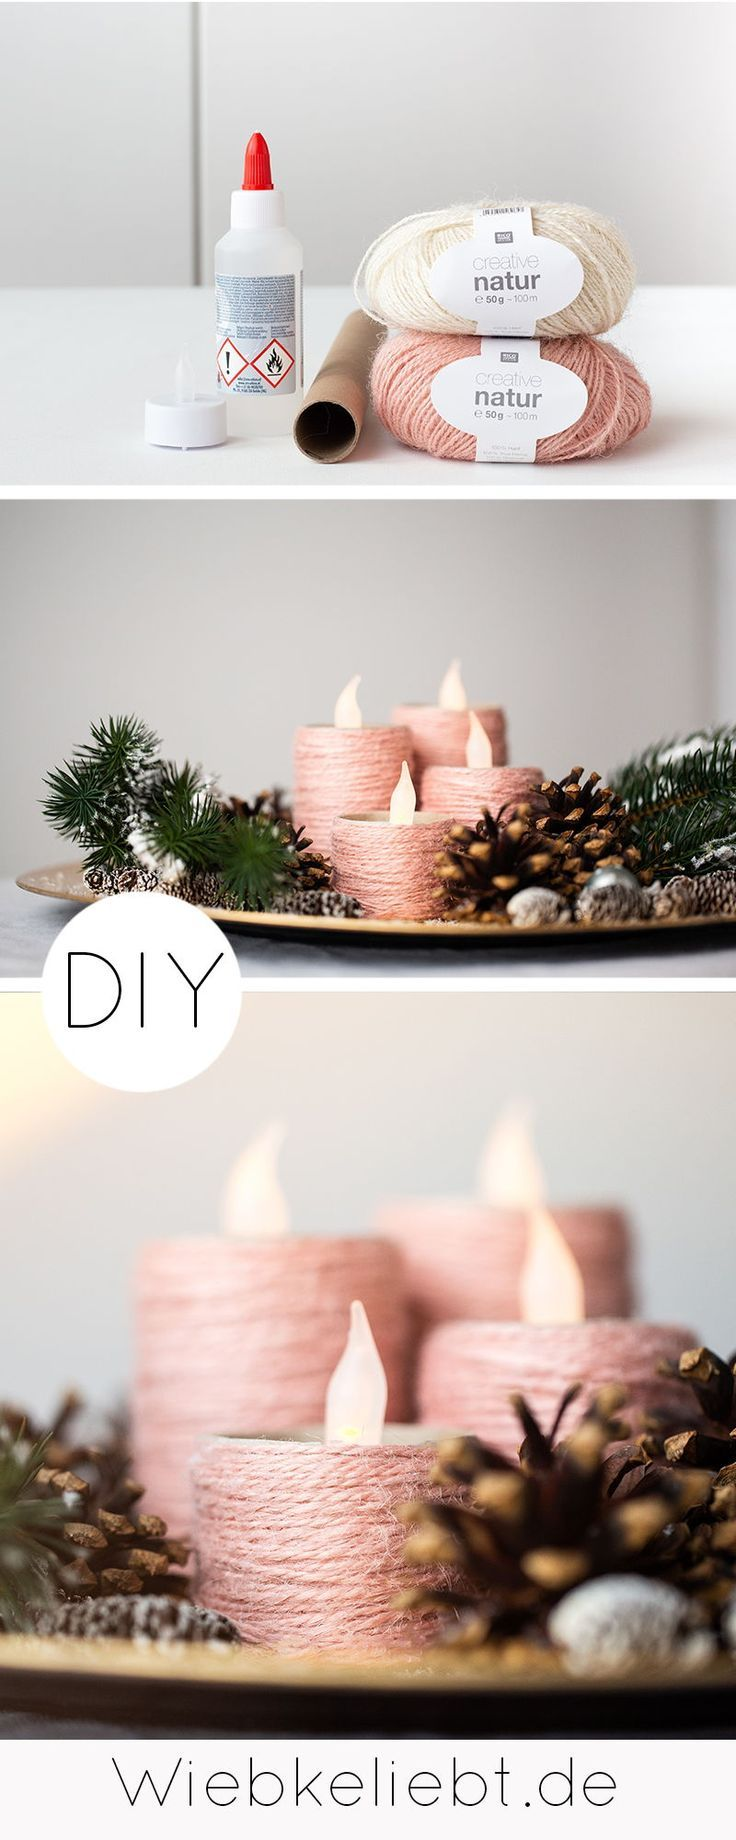 Photo of Craft idea for a DIY upcycling advent wreath to make yourself for Christmas from cardboard rolls and